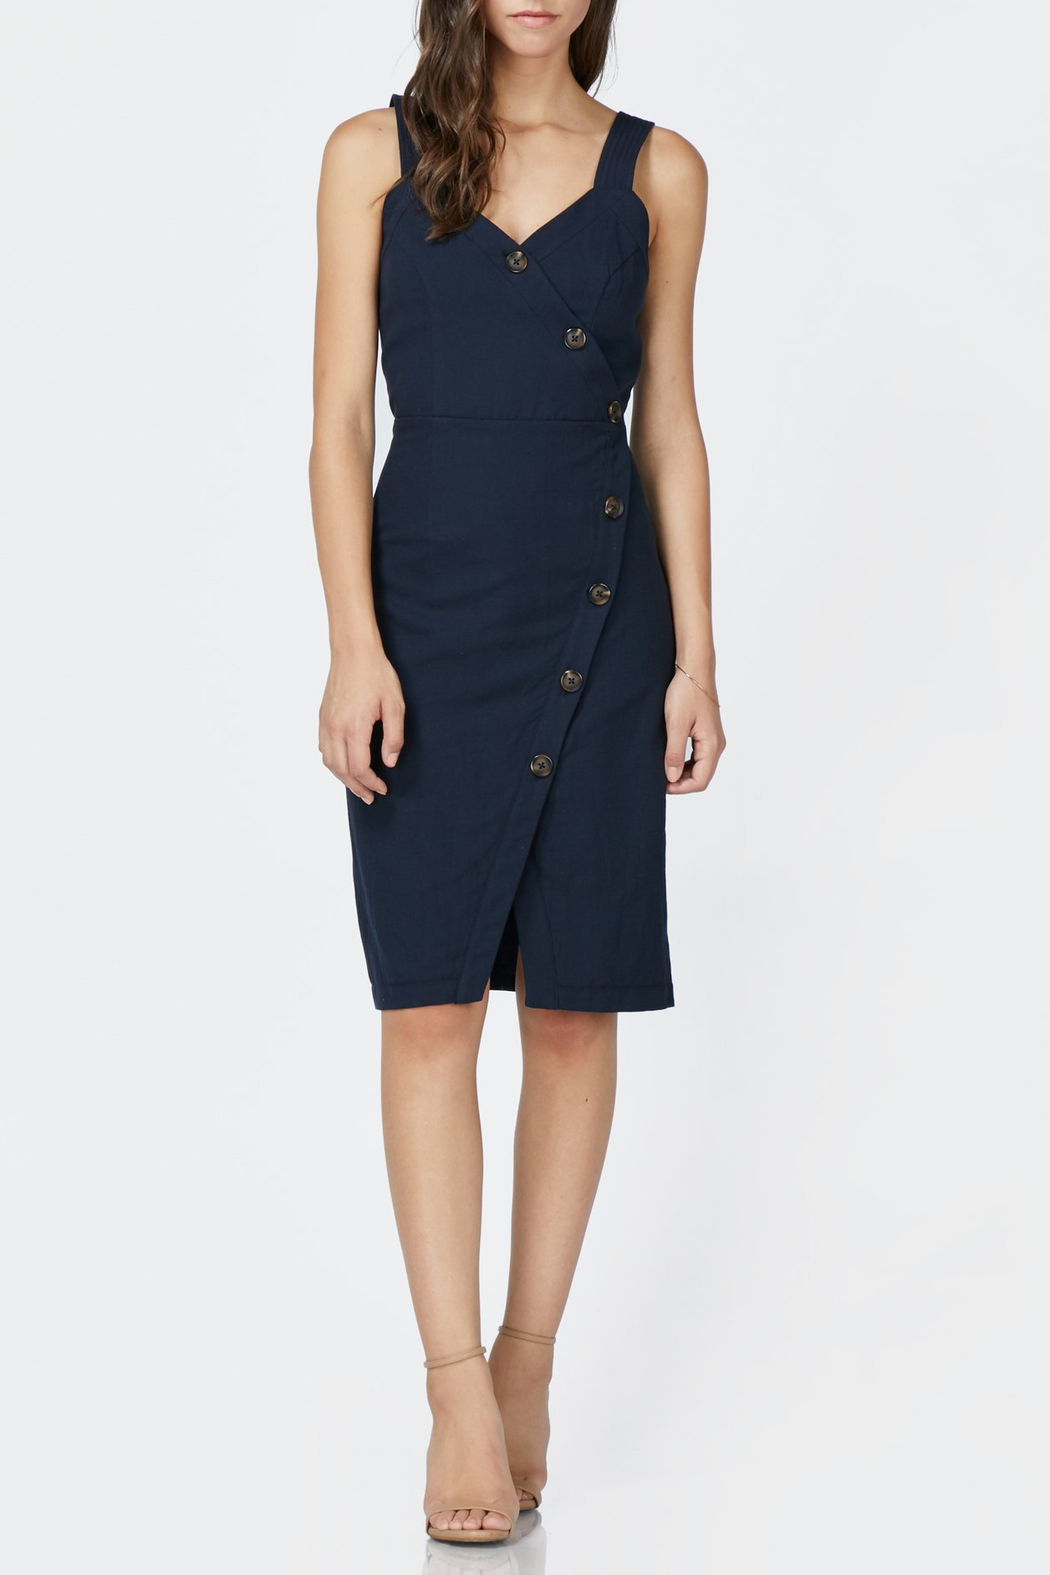 Adelyn Rae Presley Wrap Dress - Front Cropped Image